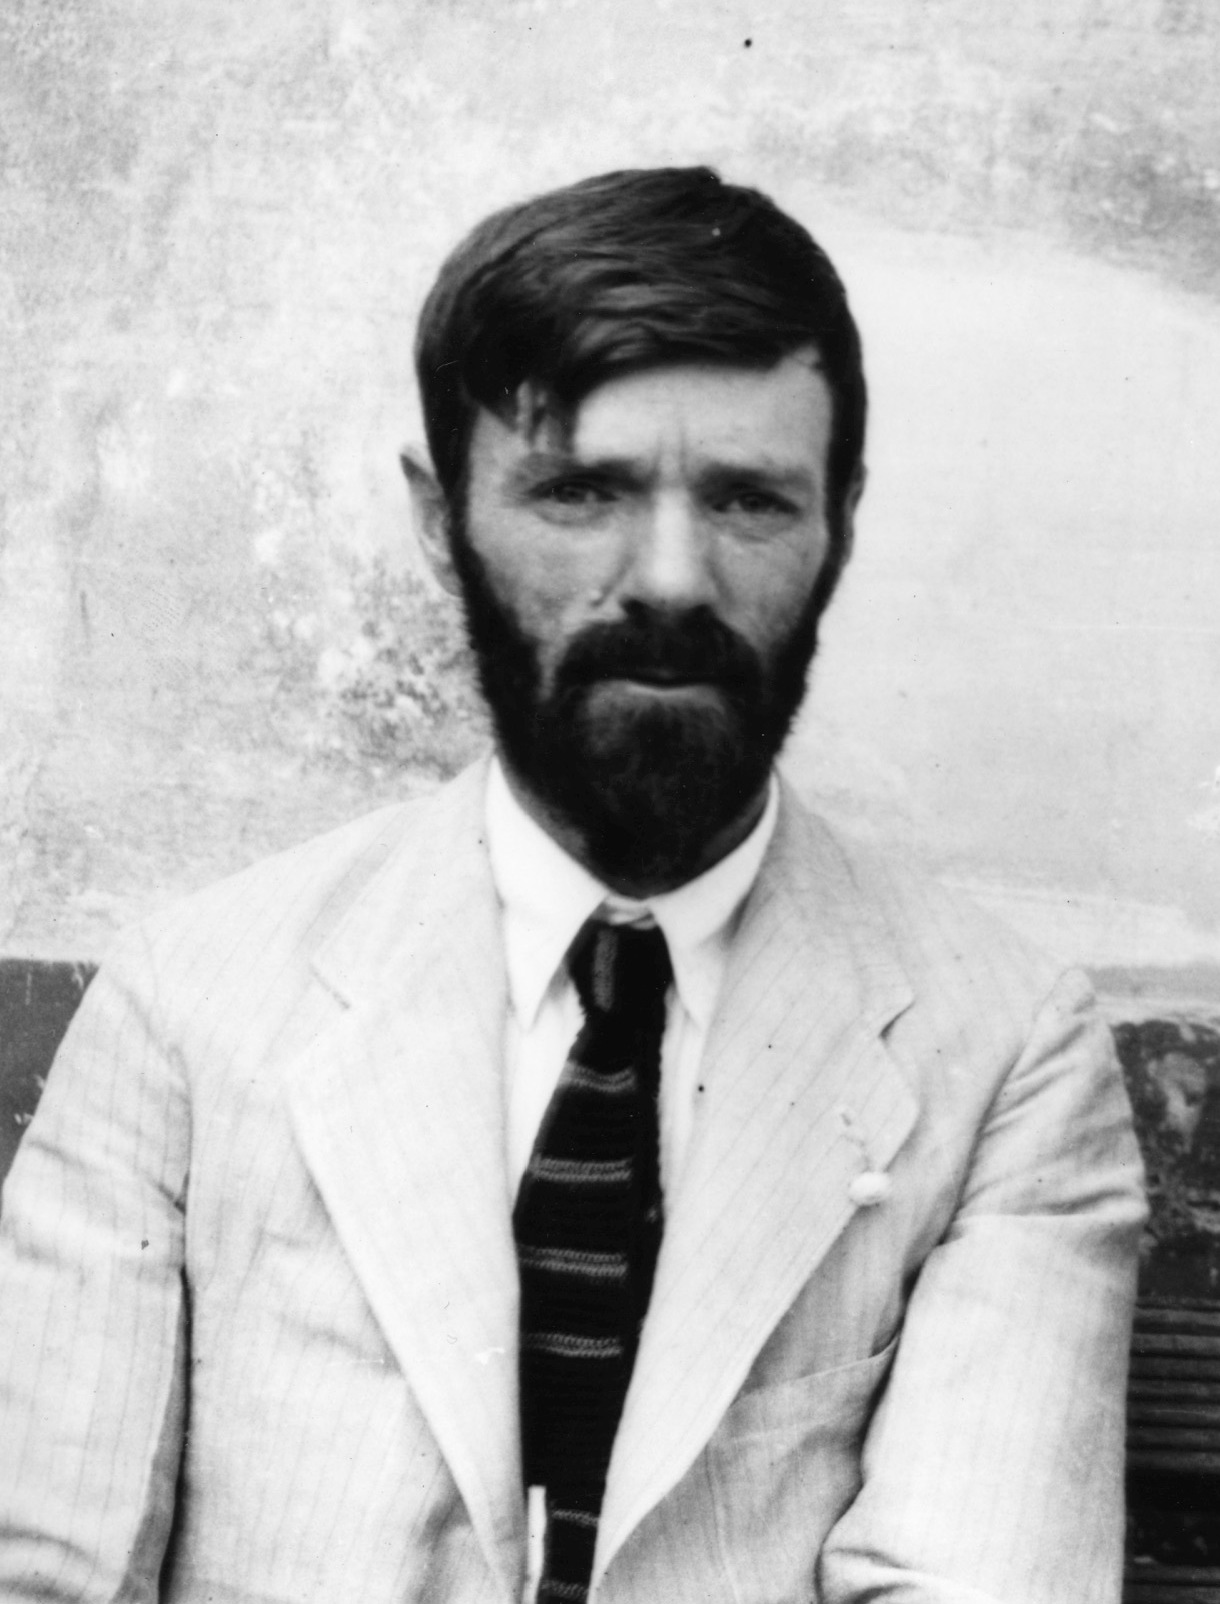 best of school dh lawrence Snake is one of dh lawrence's best animal poems, written whilst he was living in sicily it explores the relationship between humans and one of the most feared reptiles on earth - a venomous snake.